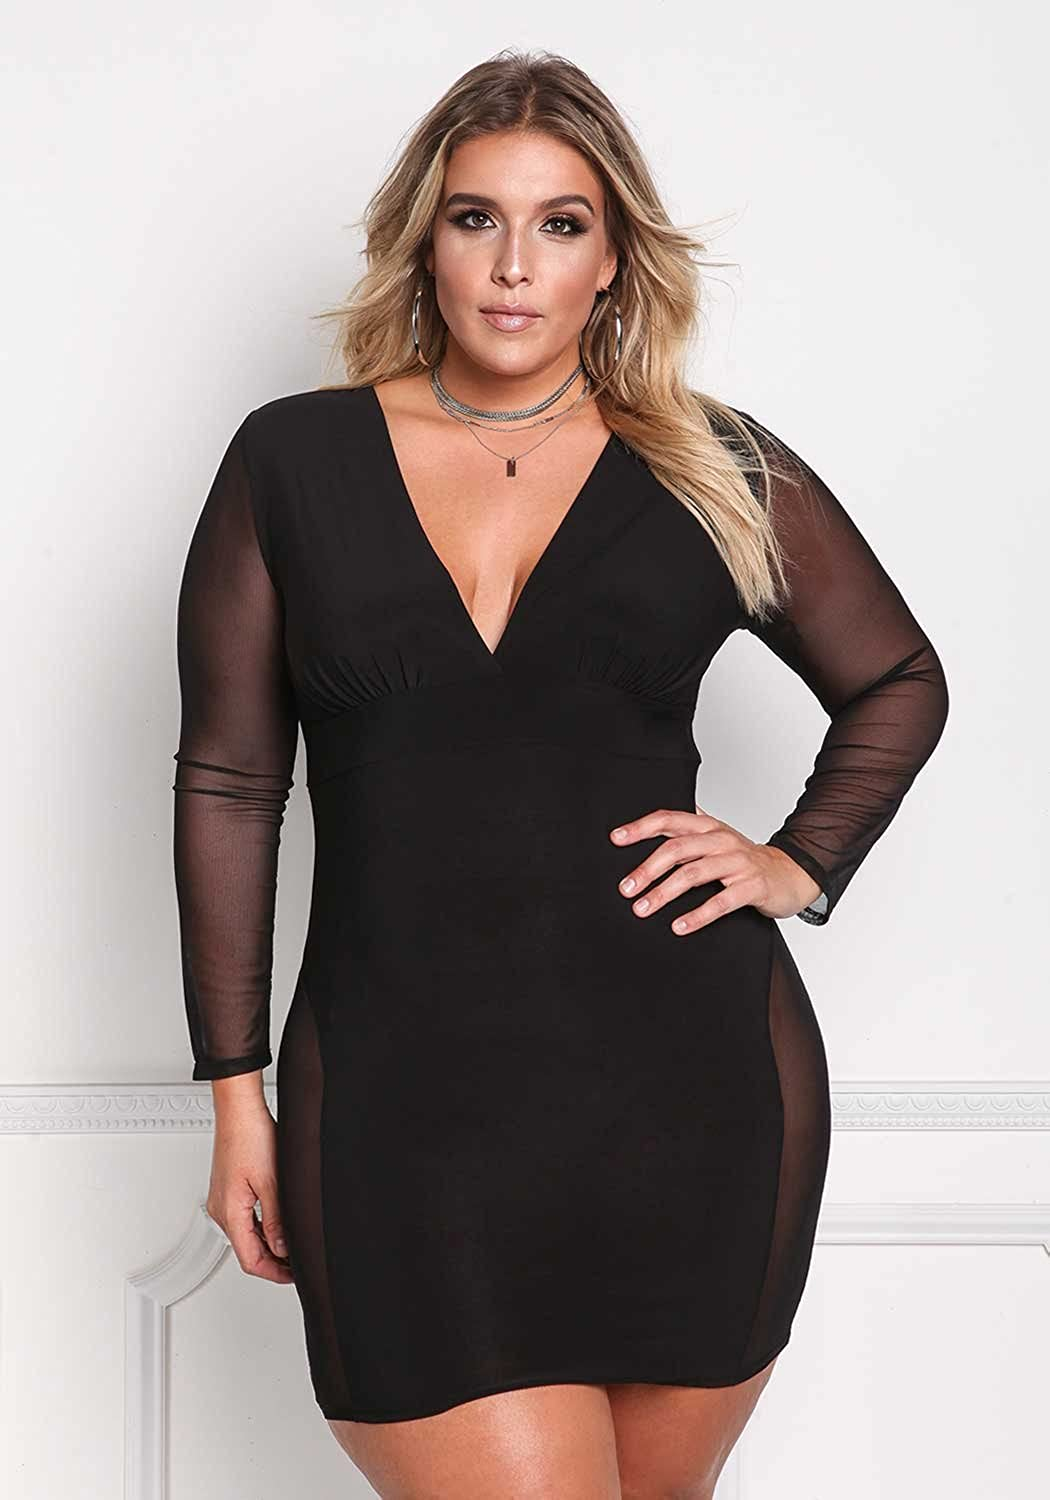 28f4d384155 ROSIANNA Women s V-Neck Lace Mesh See Through Perspective Bodycon Mini  Short Plus Size Dresses Black at Amazon Women s Clothing store